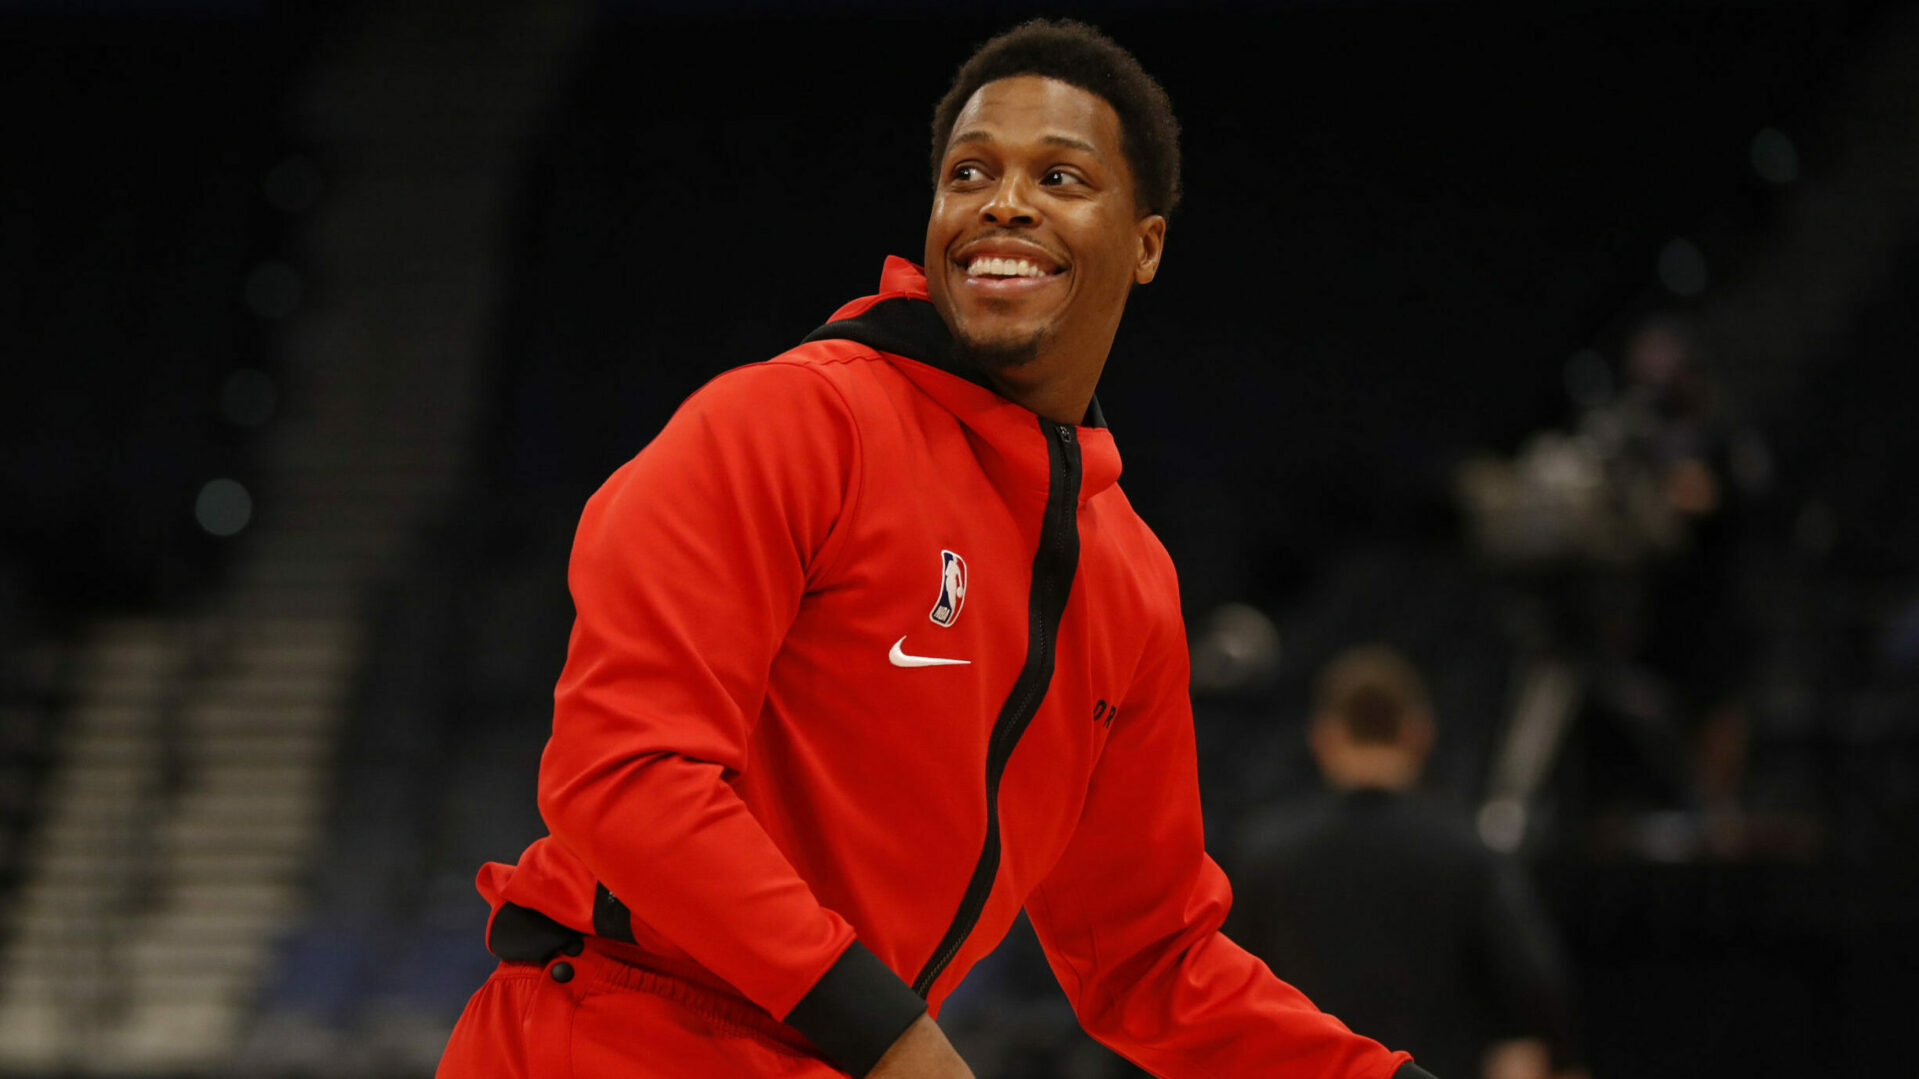 Kyle Lowry to join Miami Heat for three seasons in reported sign-and-trade